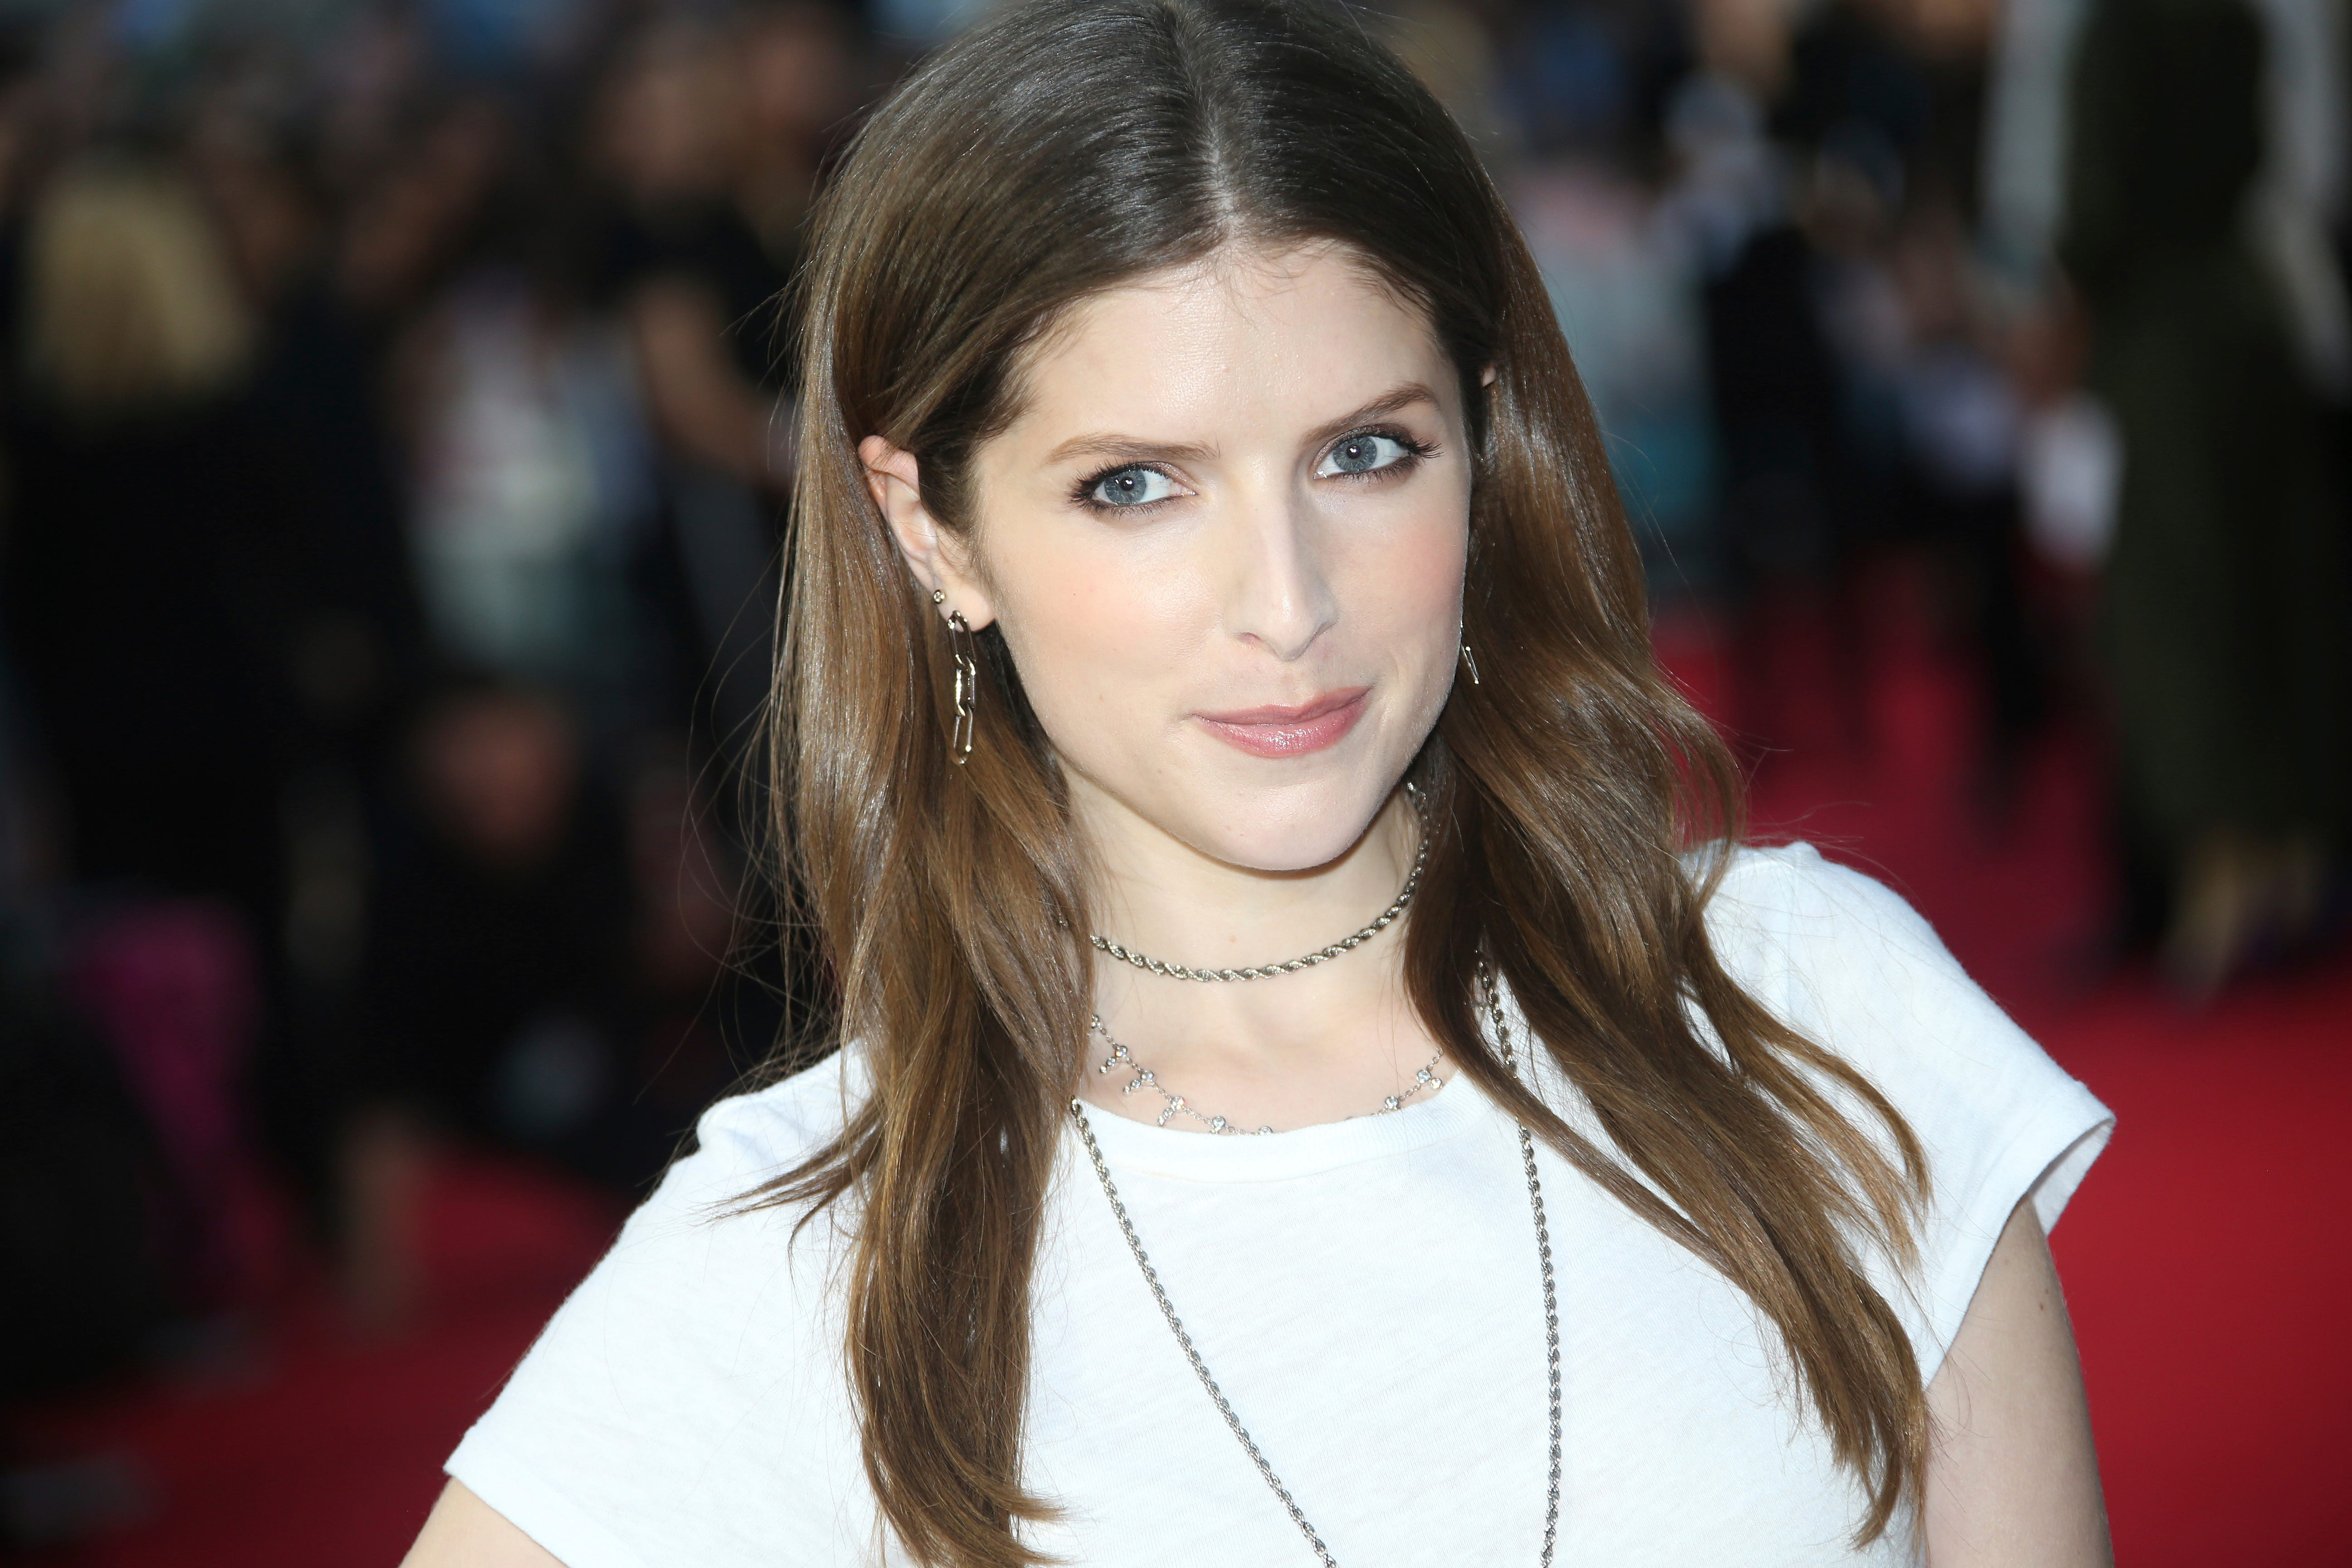 Classic Anna Kendrick! She 'just remembered' she played a character in 'Twilight'